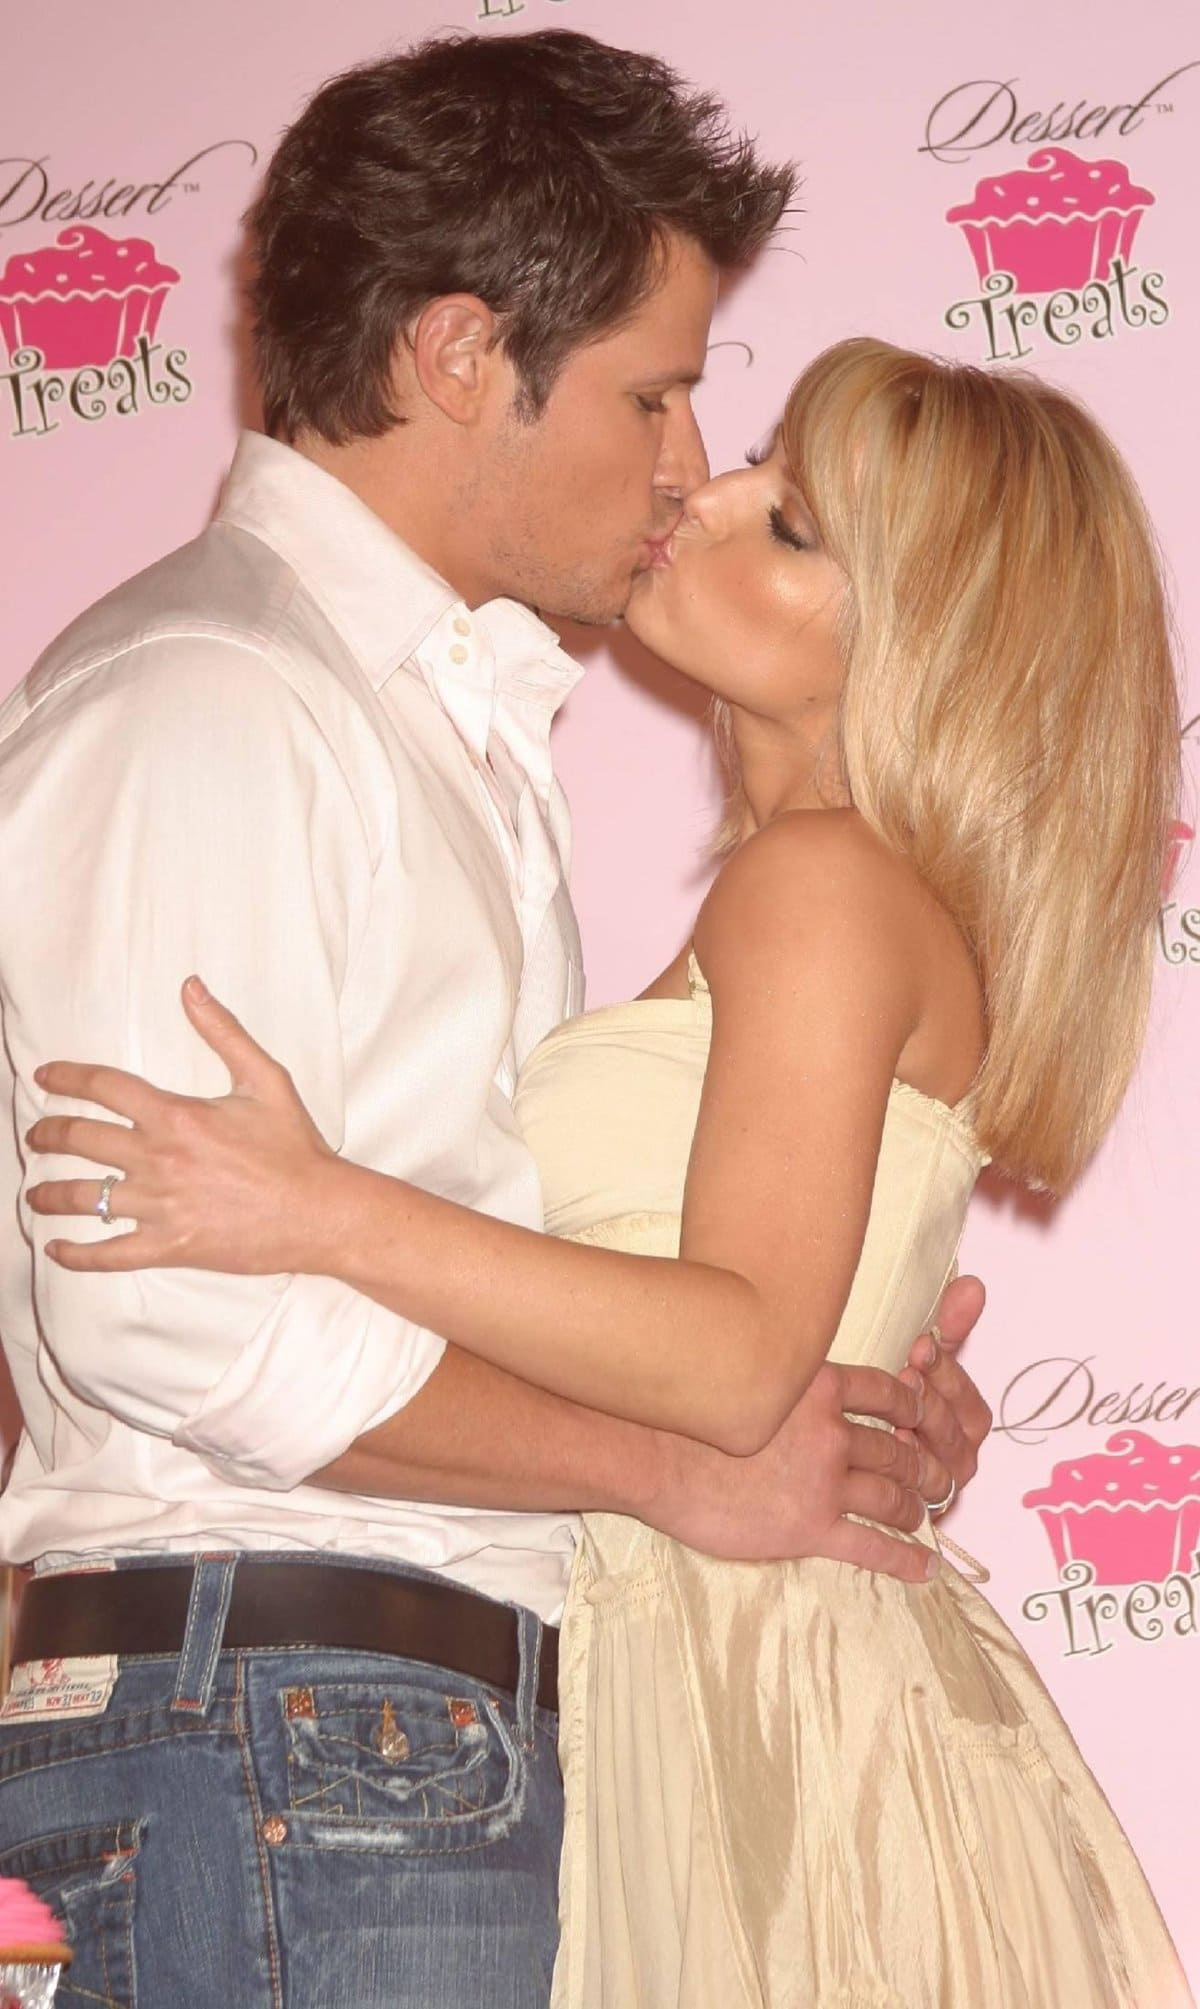 Jessica Simpson and Nick Lachey announced their divorce on November 23, 2005